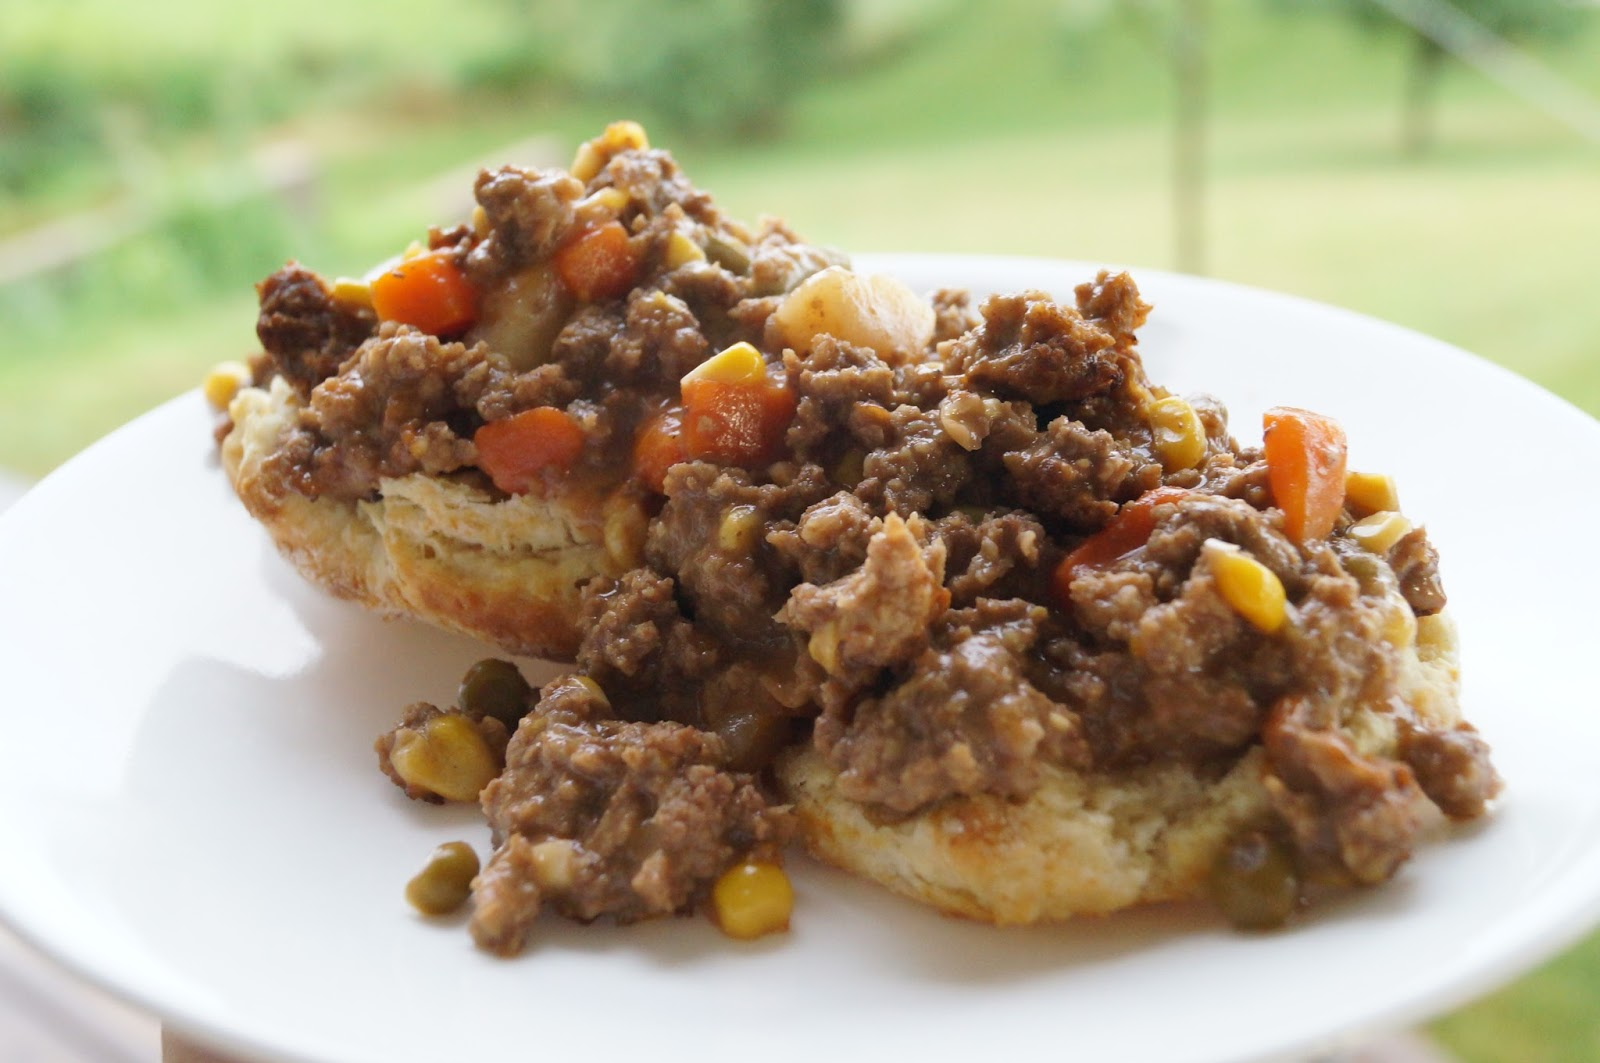 Vegetable Beef and Biscuit Casserole